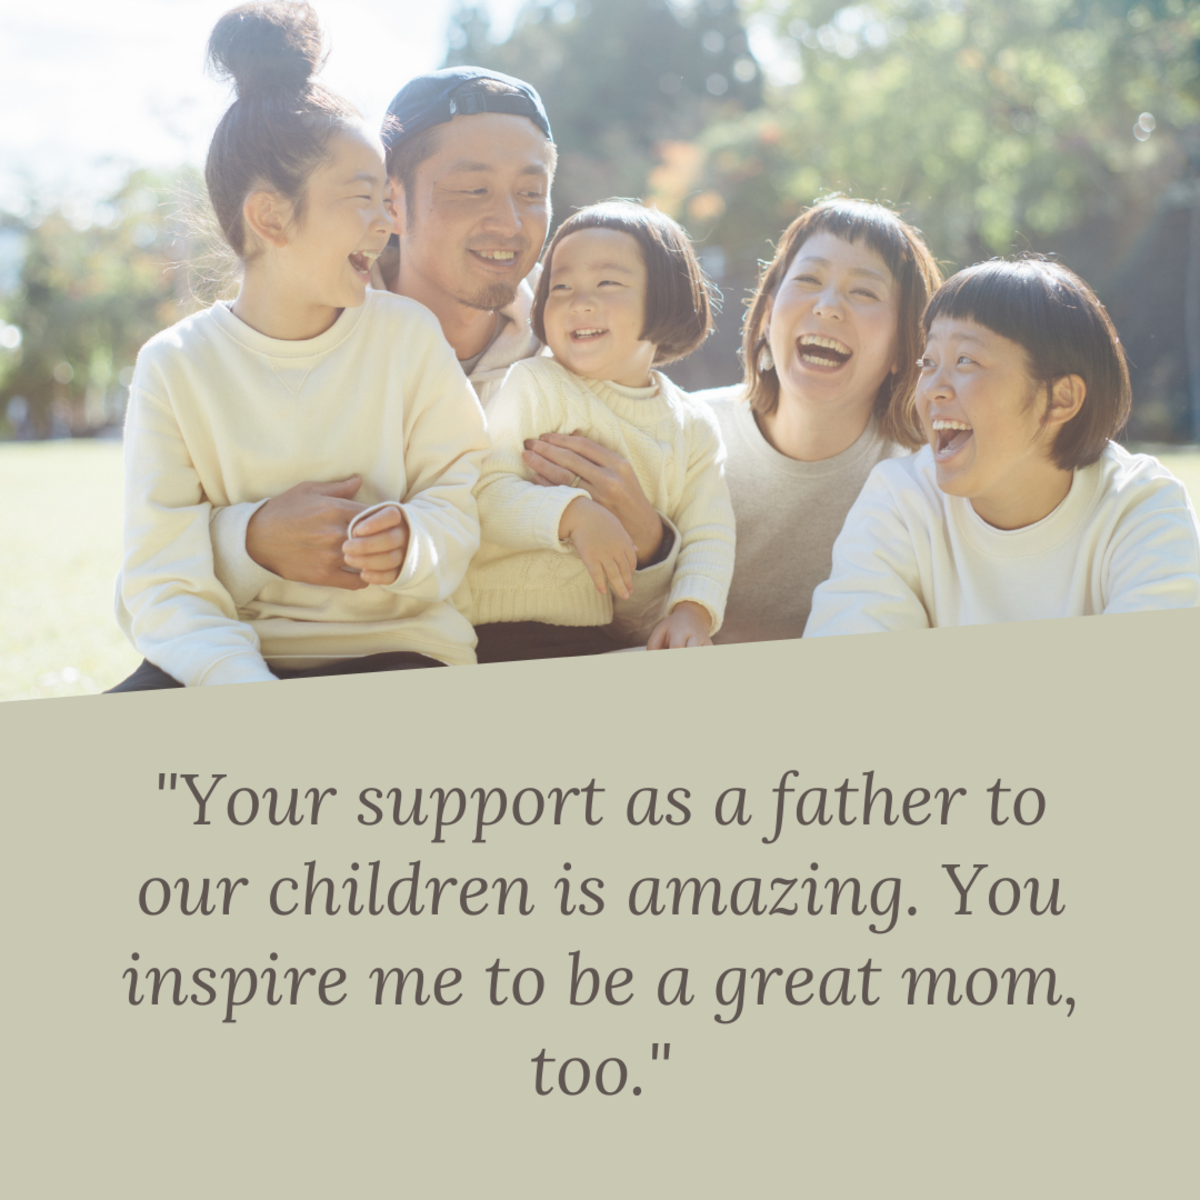 Moms, let your husbands know that they are wonderful fathers and greatly appreciated by the whole family.